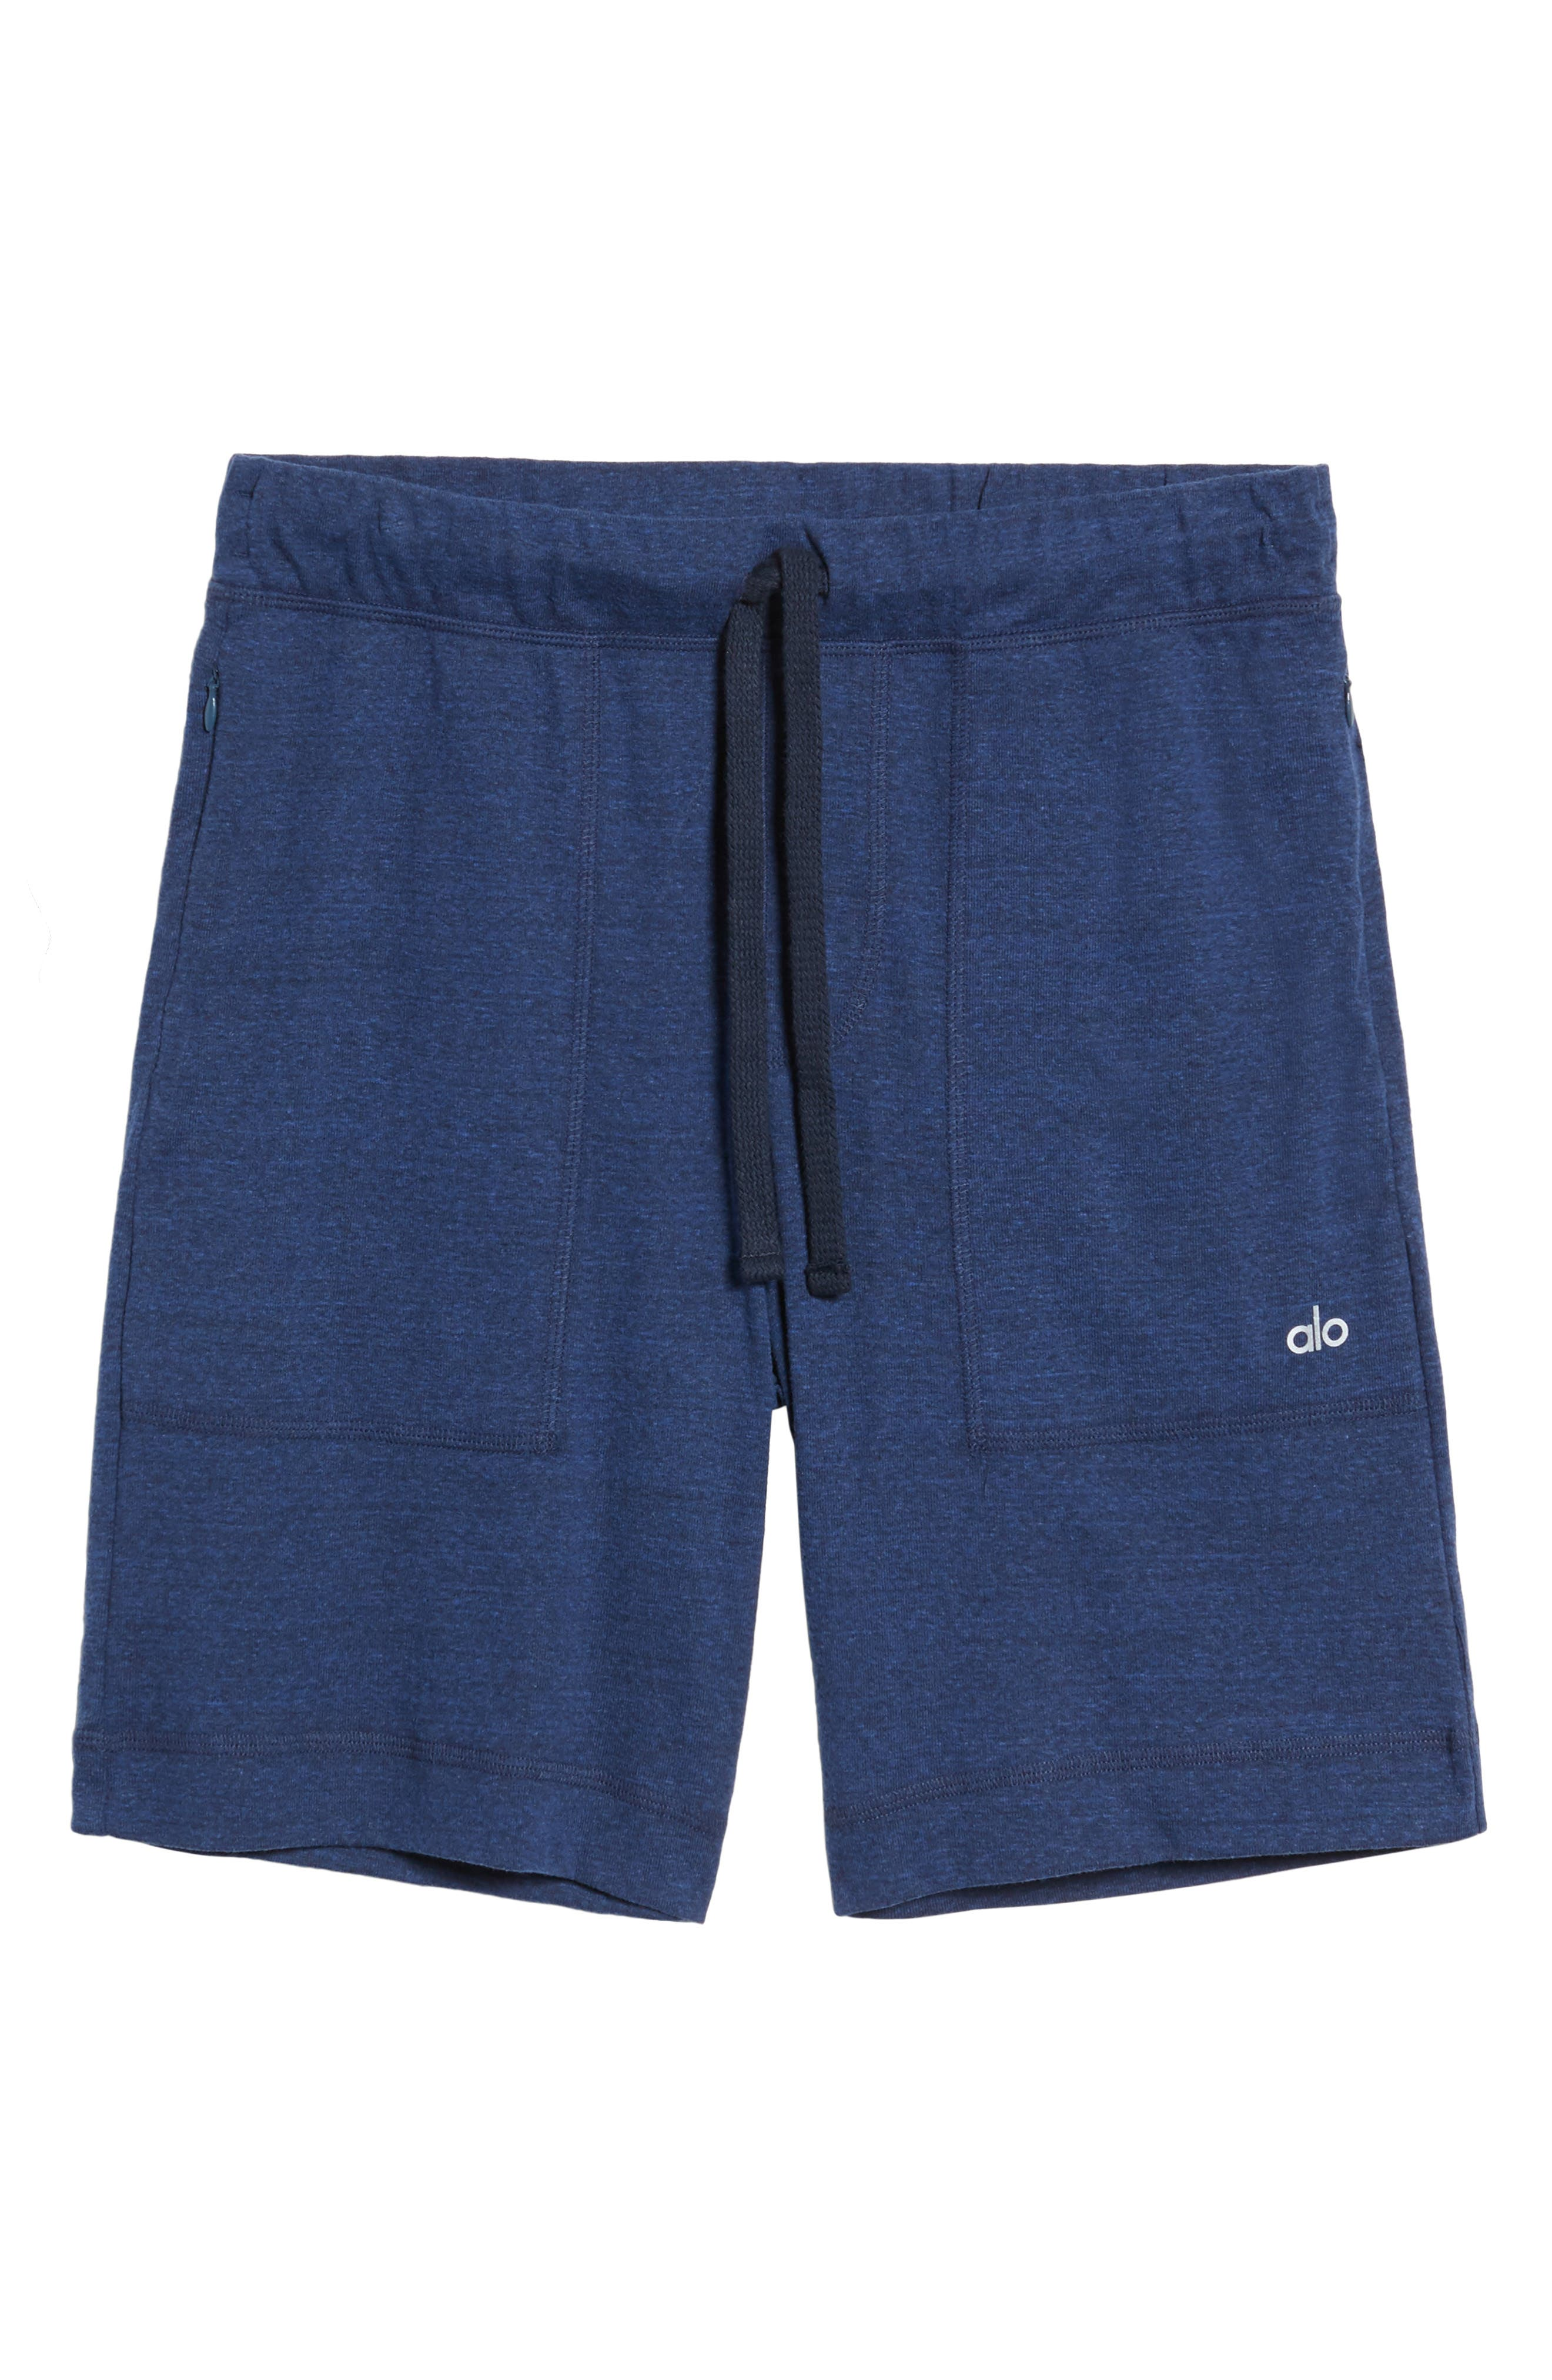 Revival Relaxed Knit Shorts,                             Alternate thumbnail 5, color,                             Navy Triblend